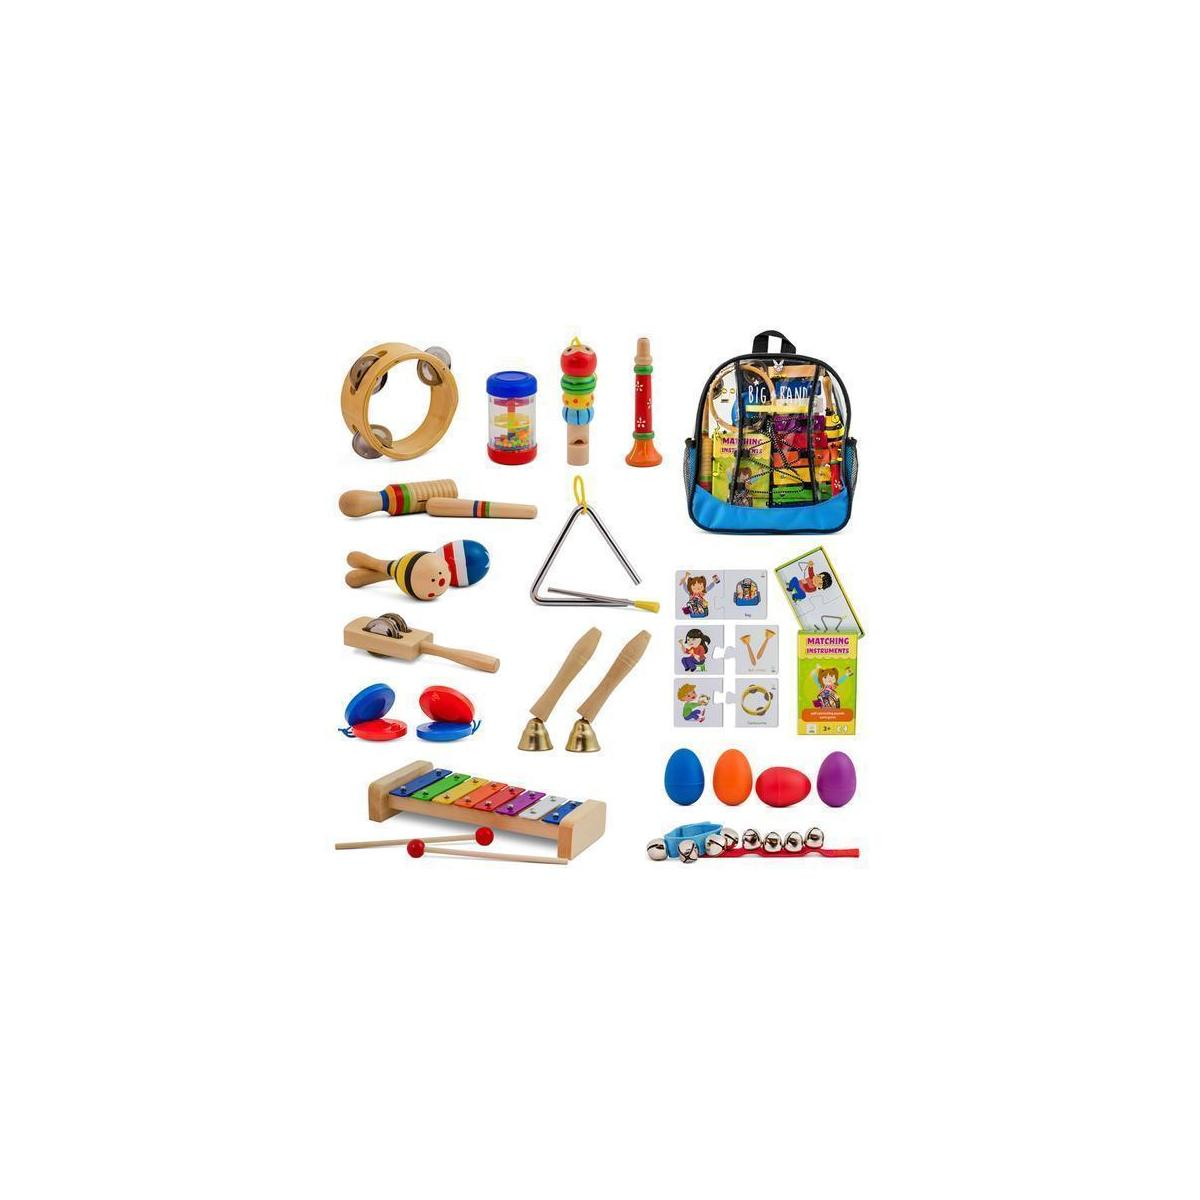 26 pc. Toddler Musical Instruments Set + Bonus Puzzle Matching Game | Wooden Toys Educational Percussion Kit with Xylophone and Storage Backpack. Big Band